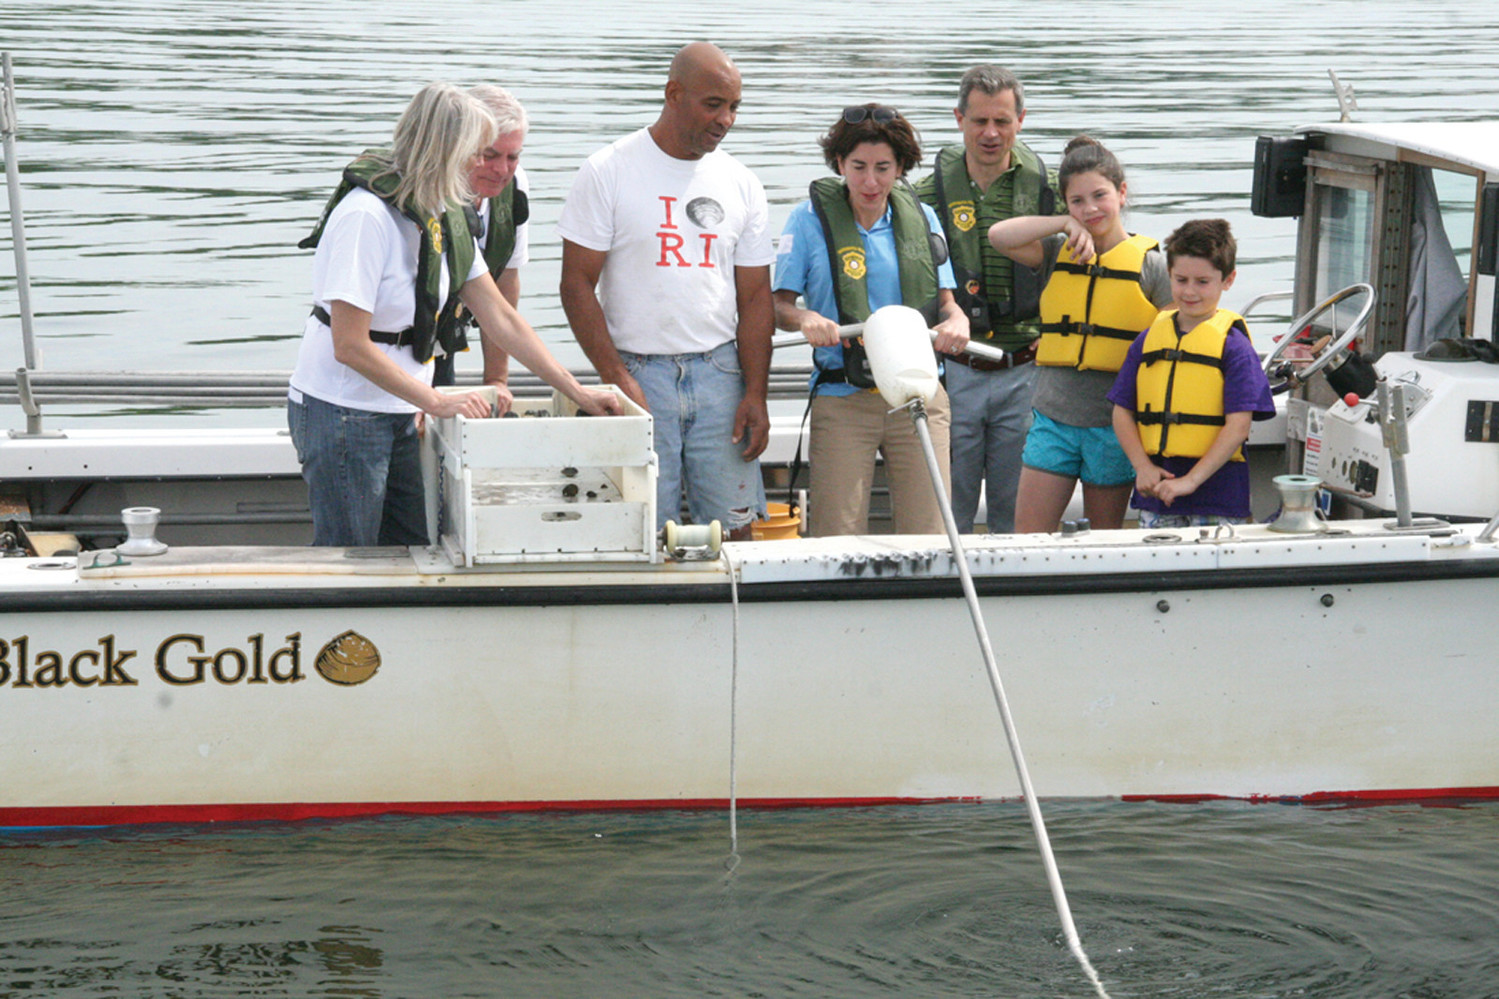 In 2016, under the direction of Jody King, Gina Raimondo tries her hand on the bull rake as Janet Coit, MAyos Scott Svedisian, Andy Moffit and their children, Cecilia and Thompson, watch. Asked what impressed her about the experience, Raimondo said how King's livelihood is dependent upon his catch, one clam at a time.